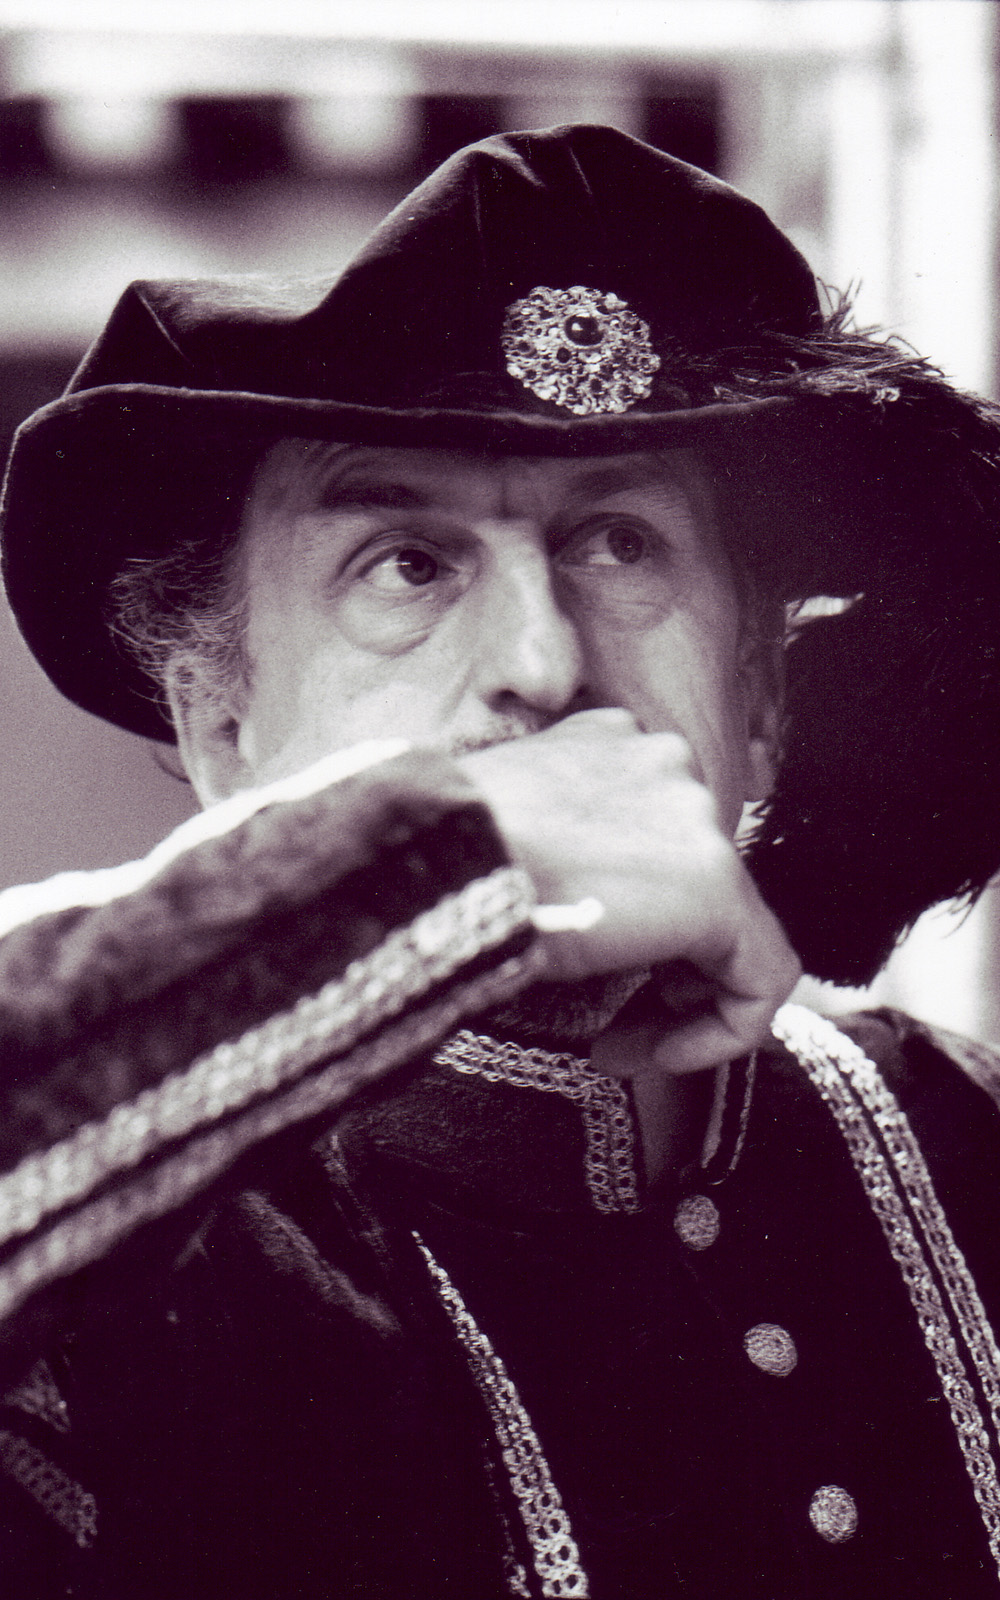 A man wearing a large hat leans his hand to his mouth.